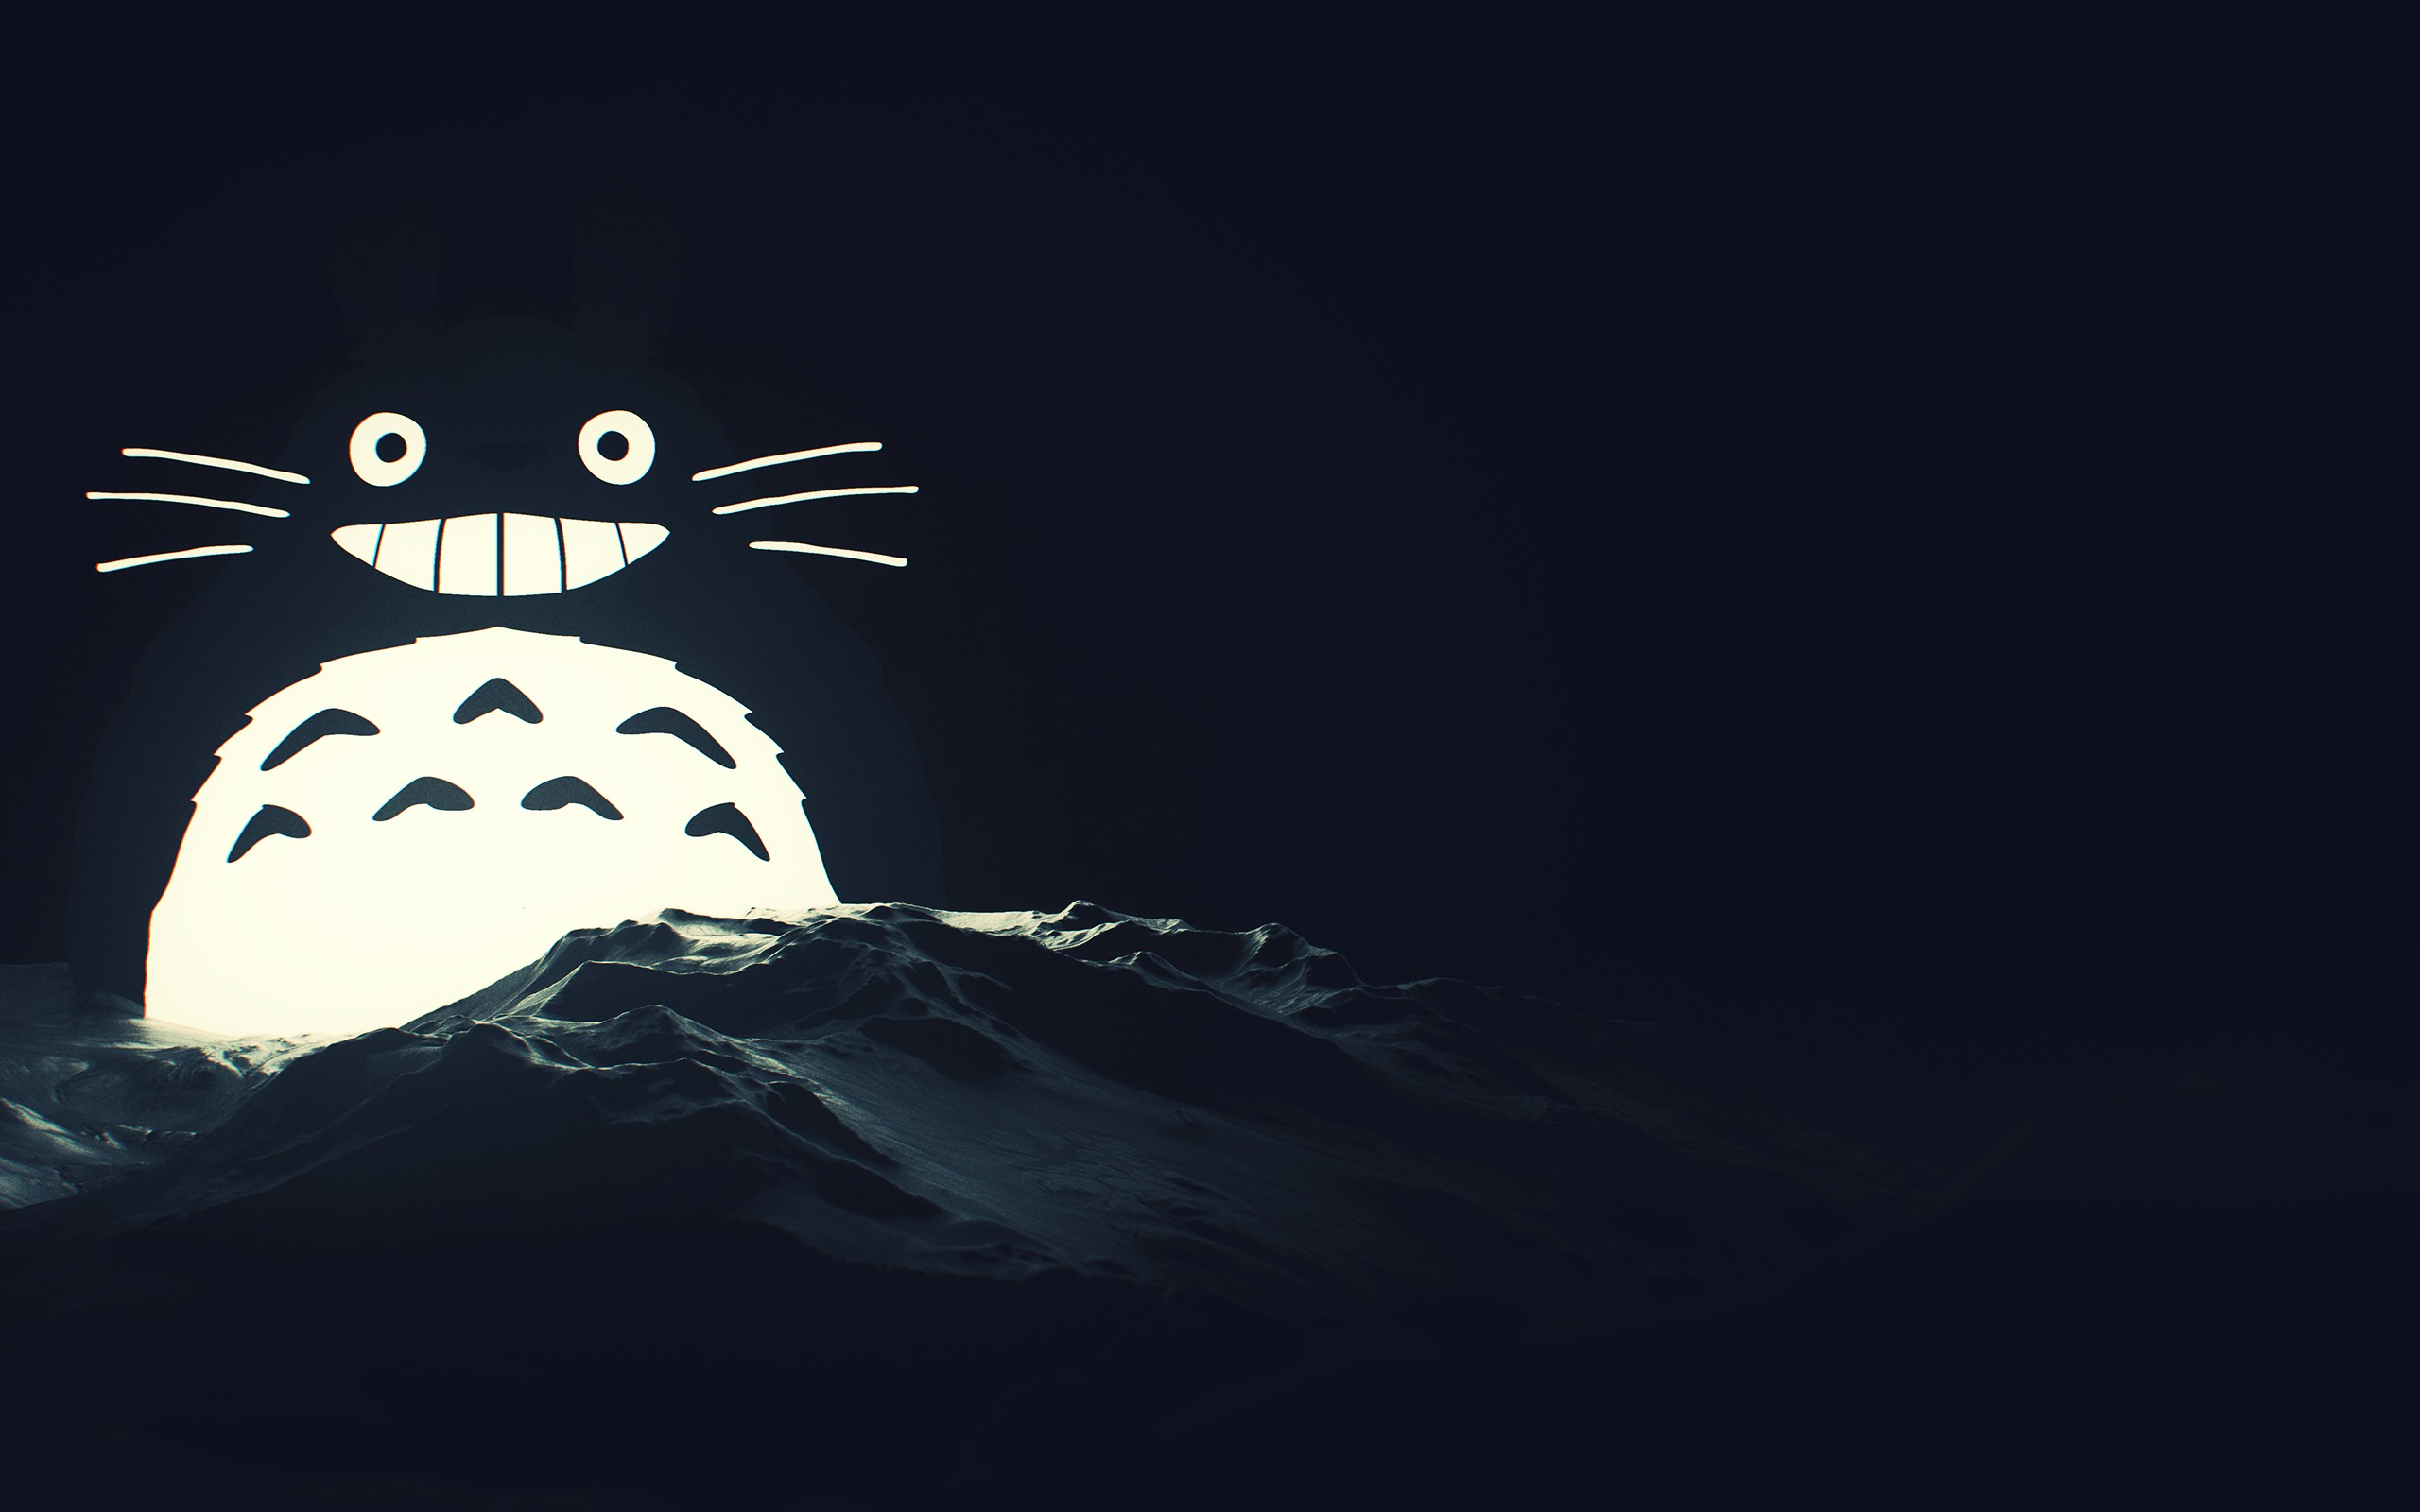 My Neighbor Totoro Wallpapers Pictures Images HD Wallpapers Download Free Images Wallpaper [1000image.com]